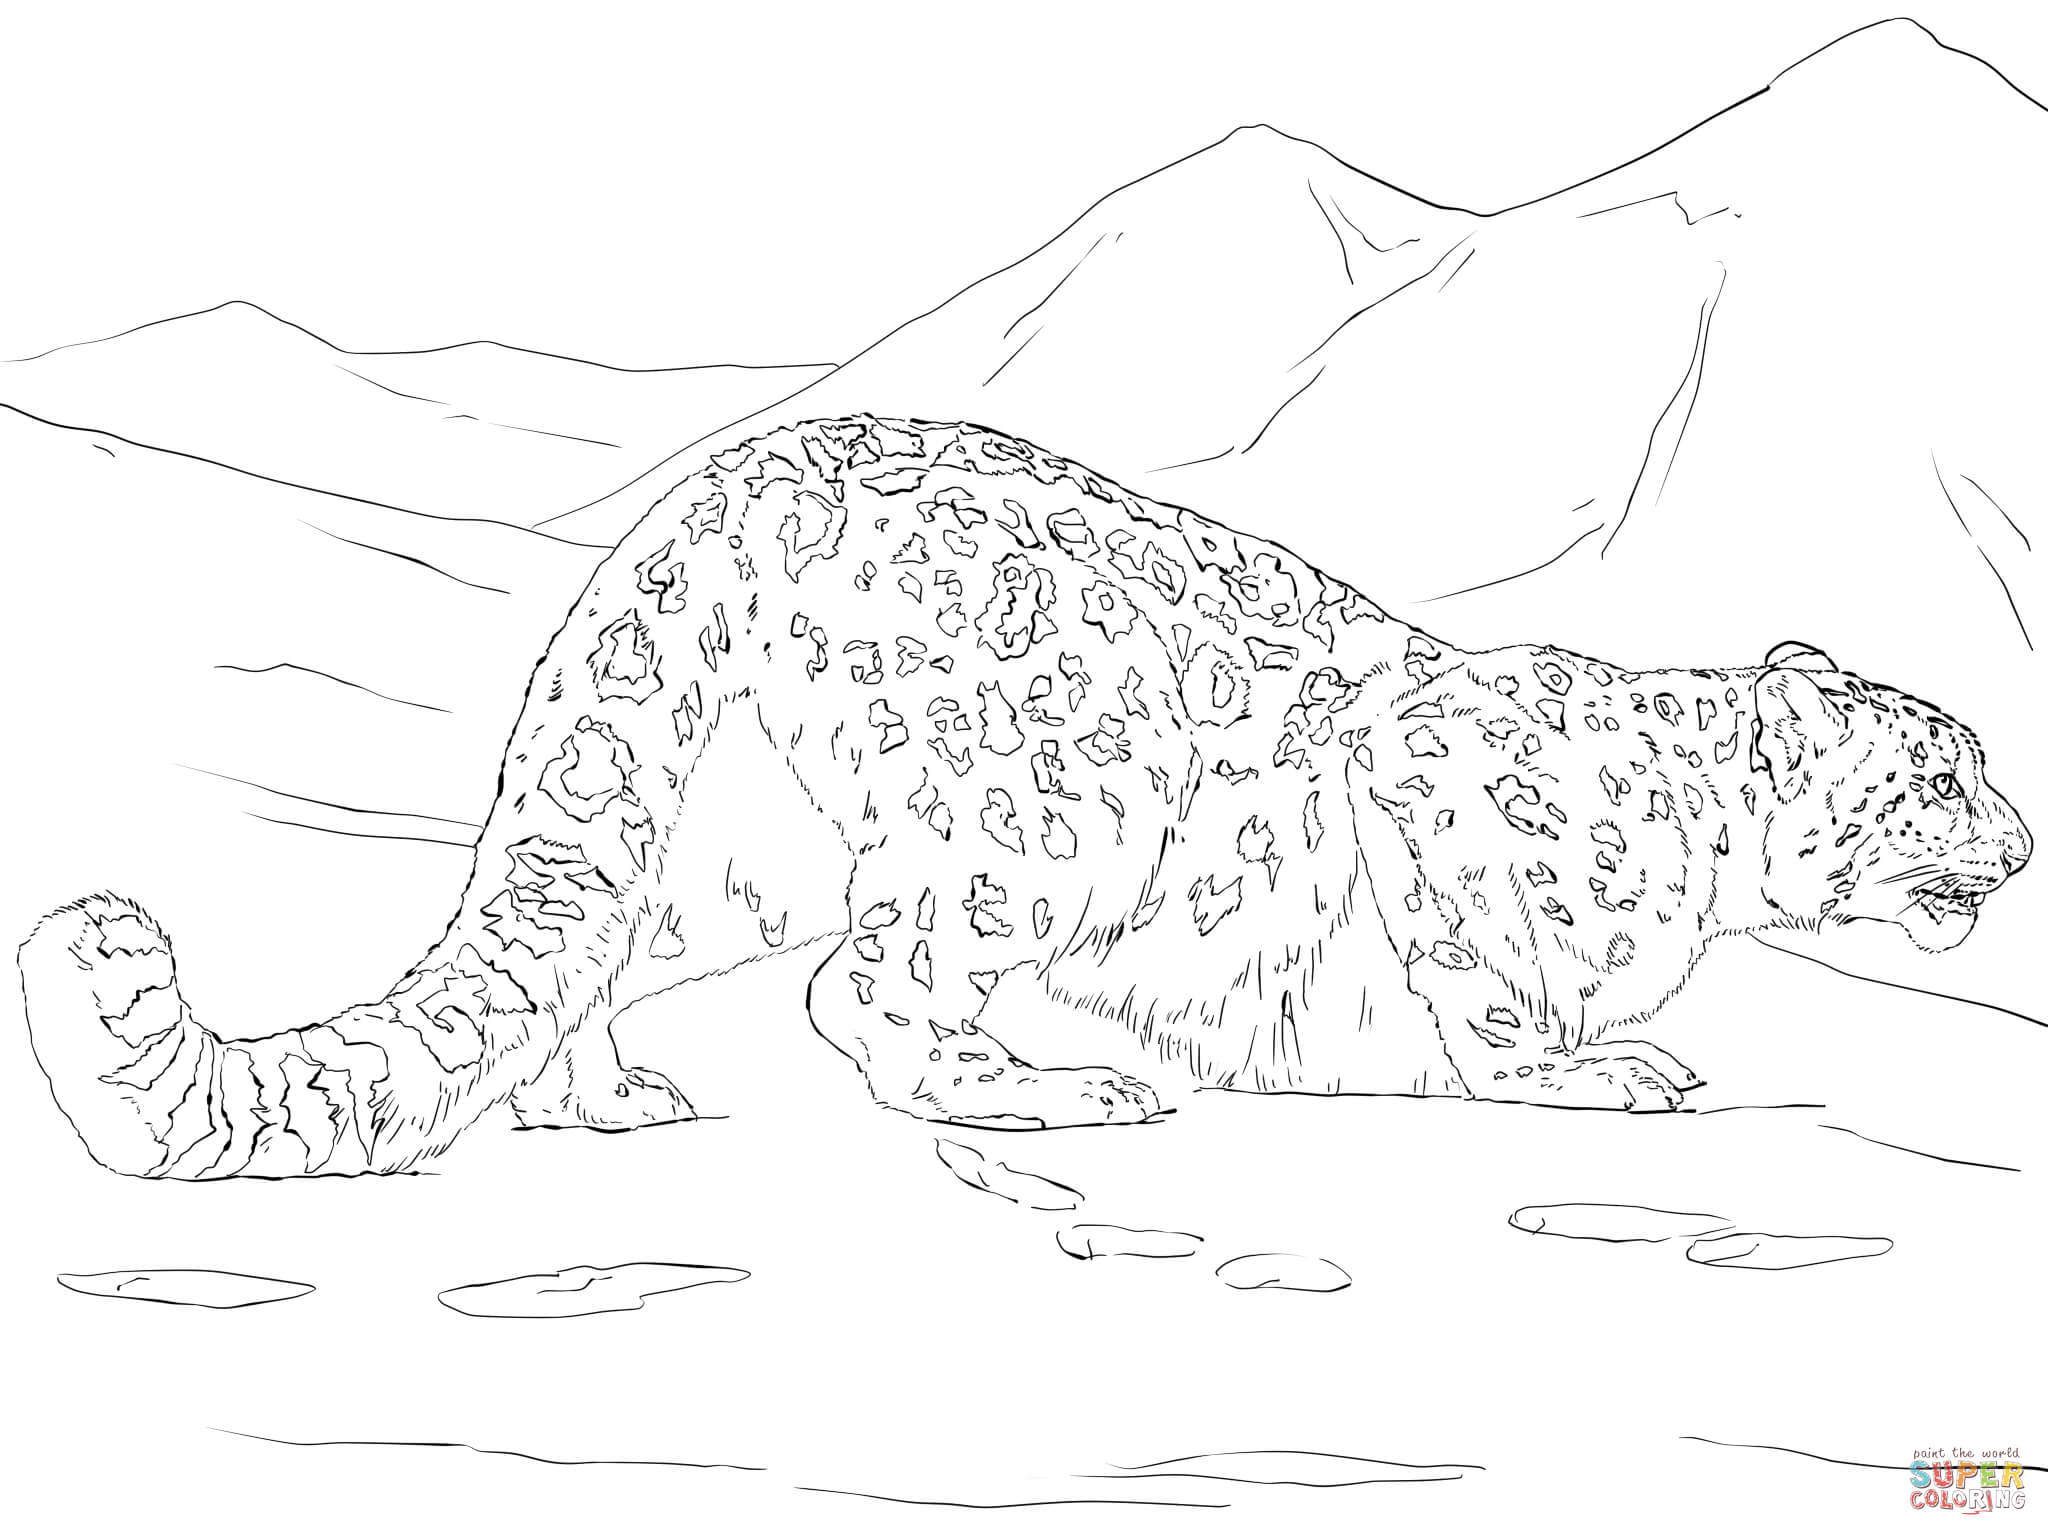 Drawn snow leopard tree drawing Coloring page Printable Snow Leopard